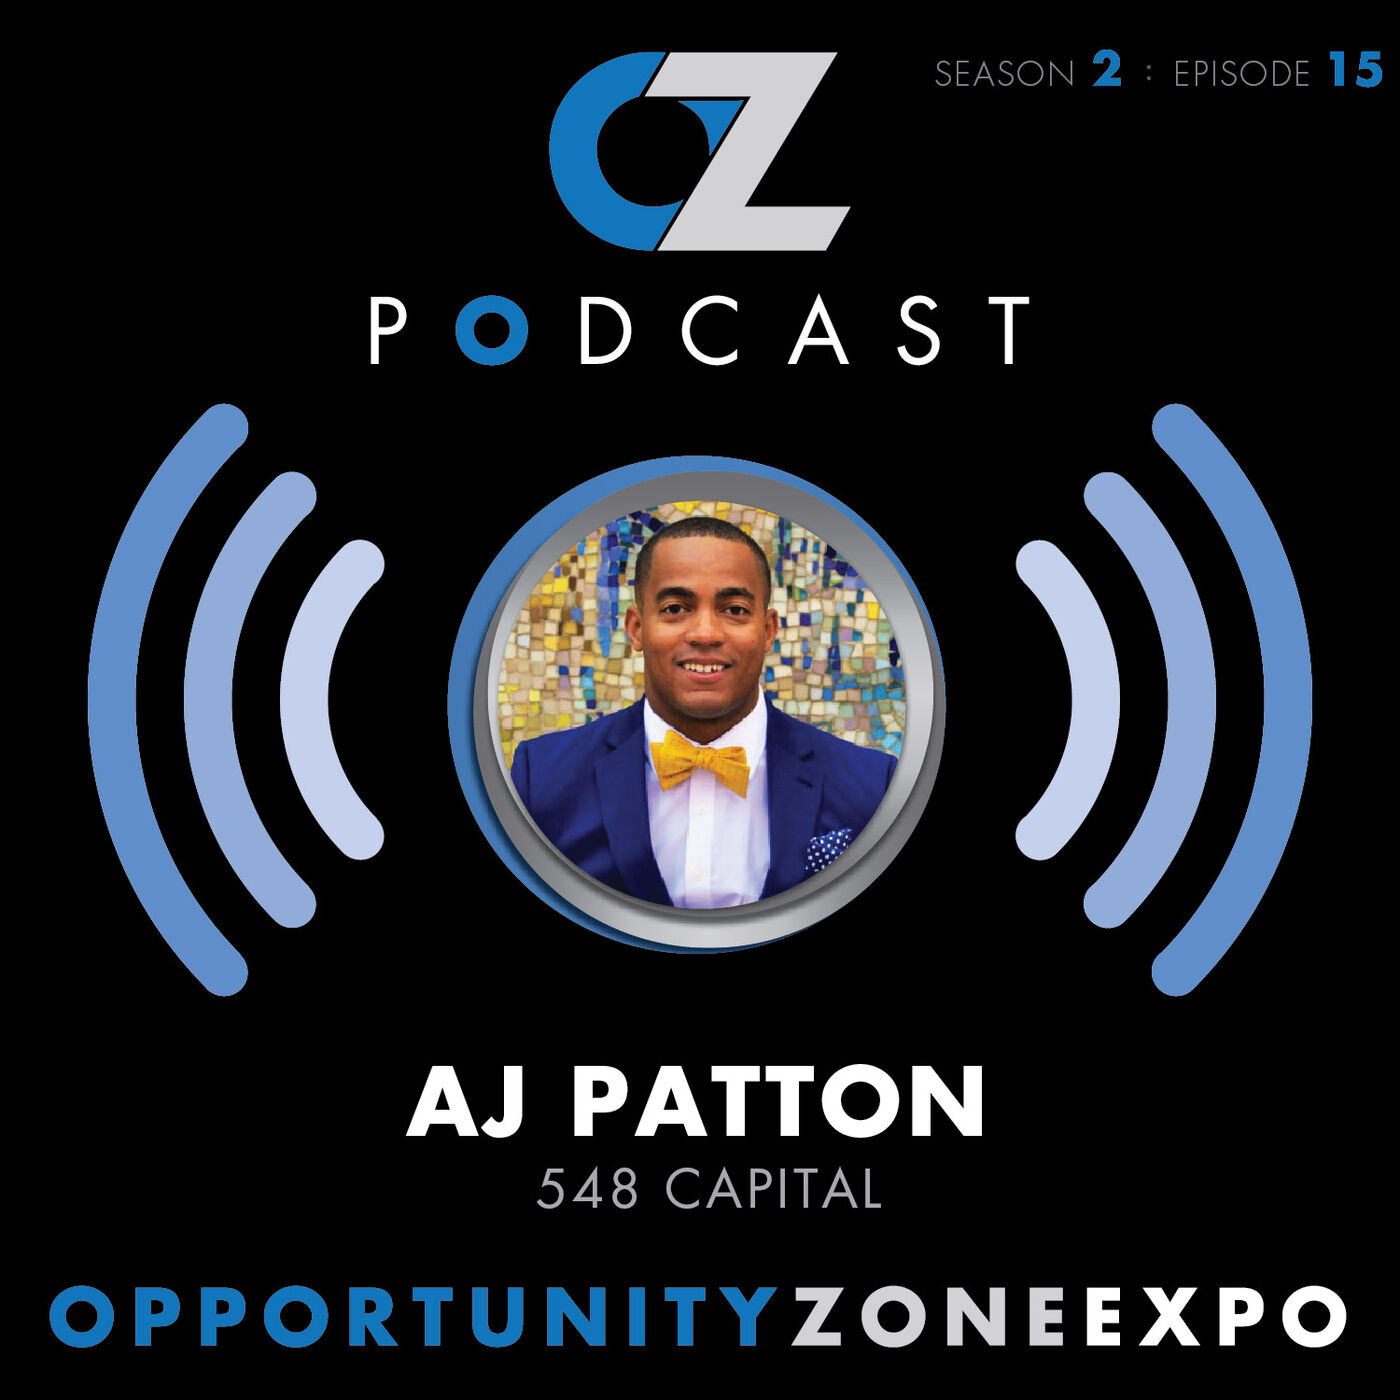 AJ Patton - Affordable Housing and Alternative Energy under one QOF Banner